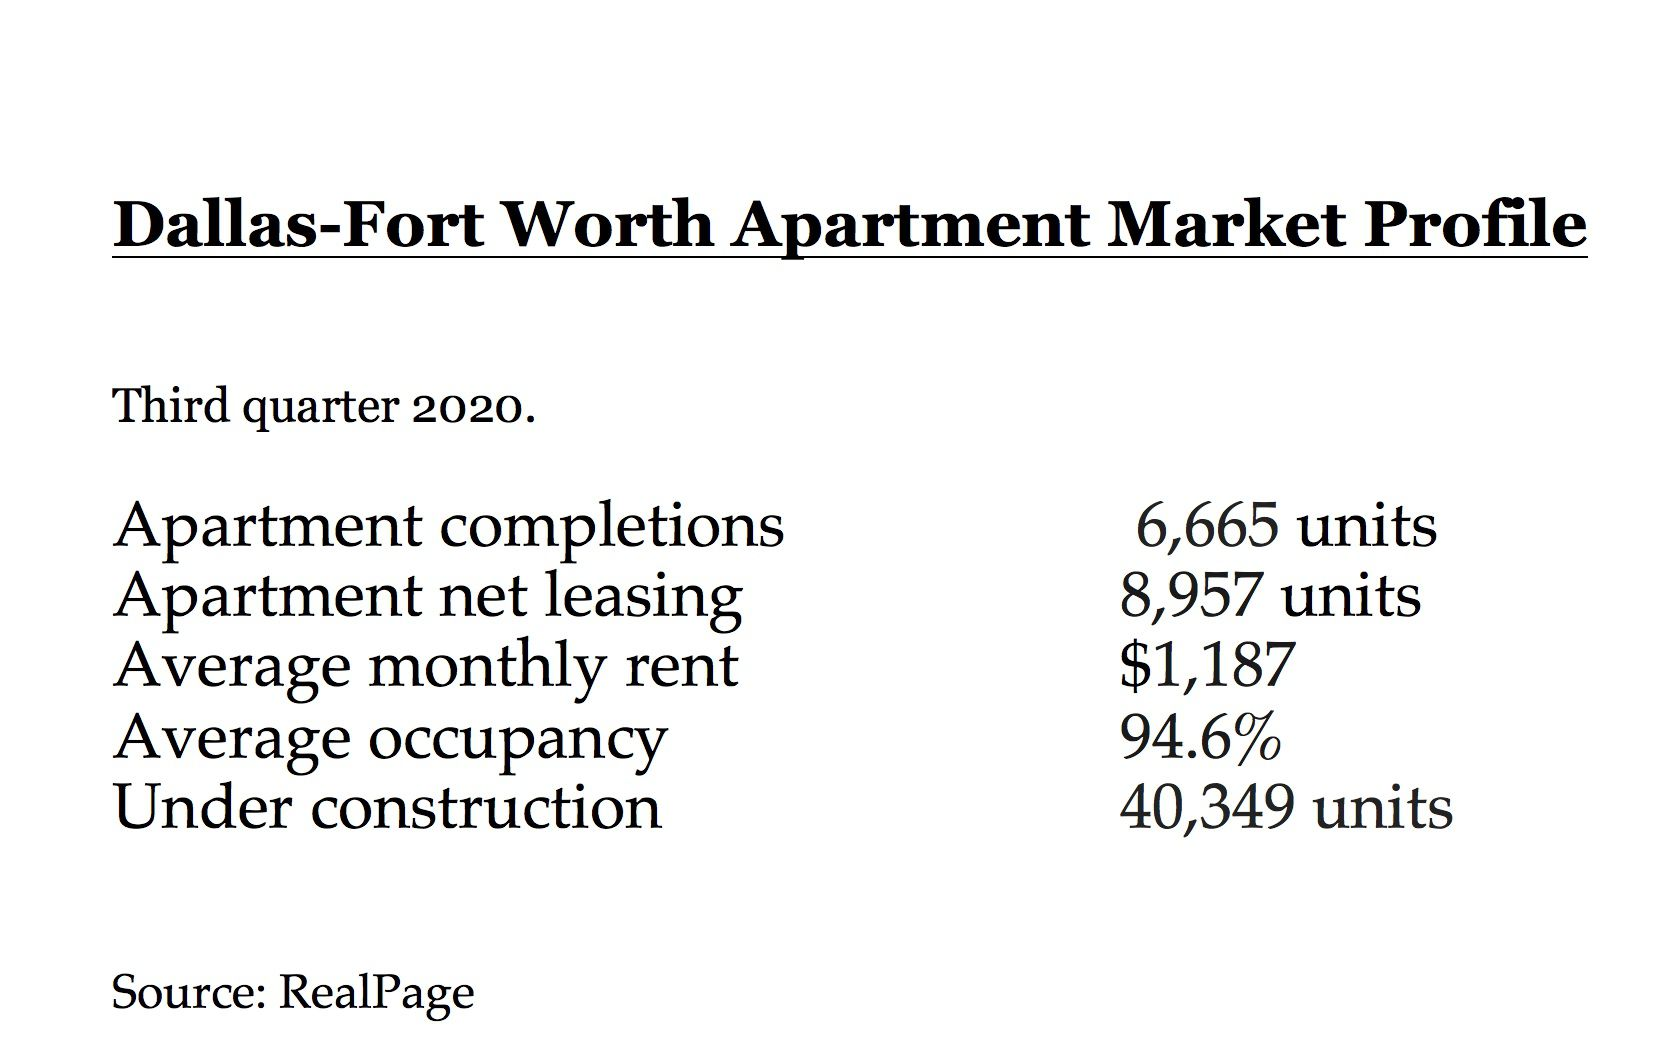 D-FW apartment leasing outpaced new unit completions in the third quarter.